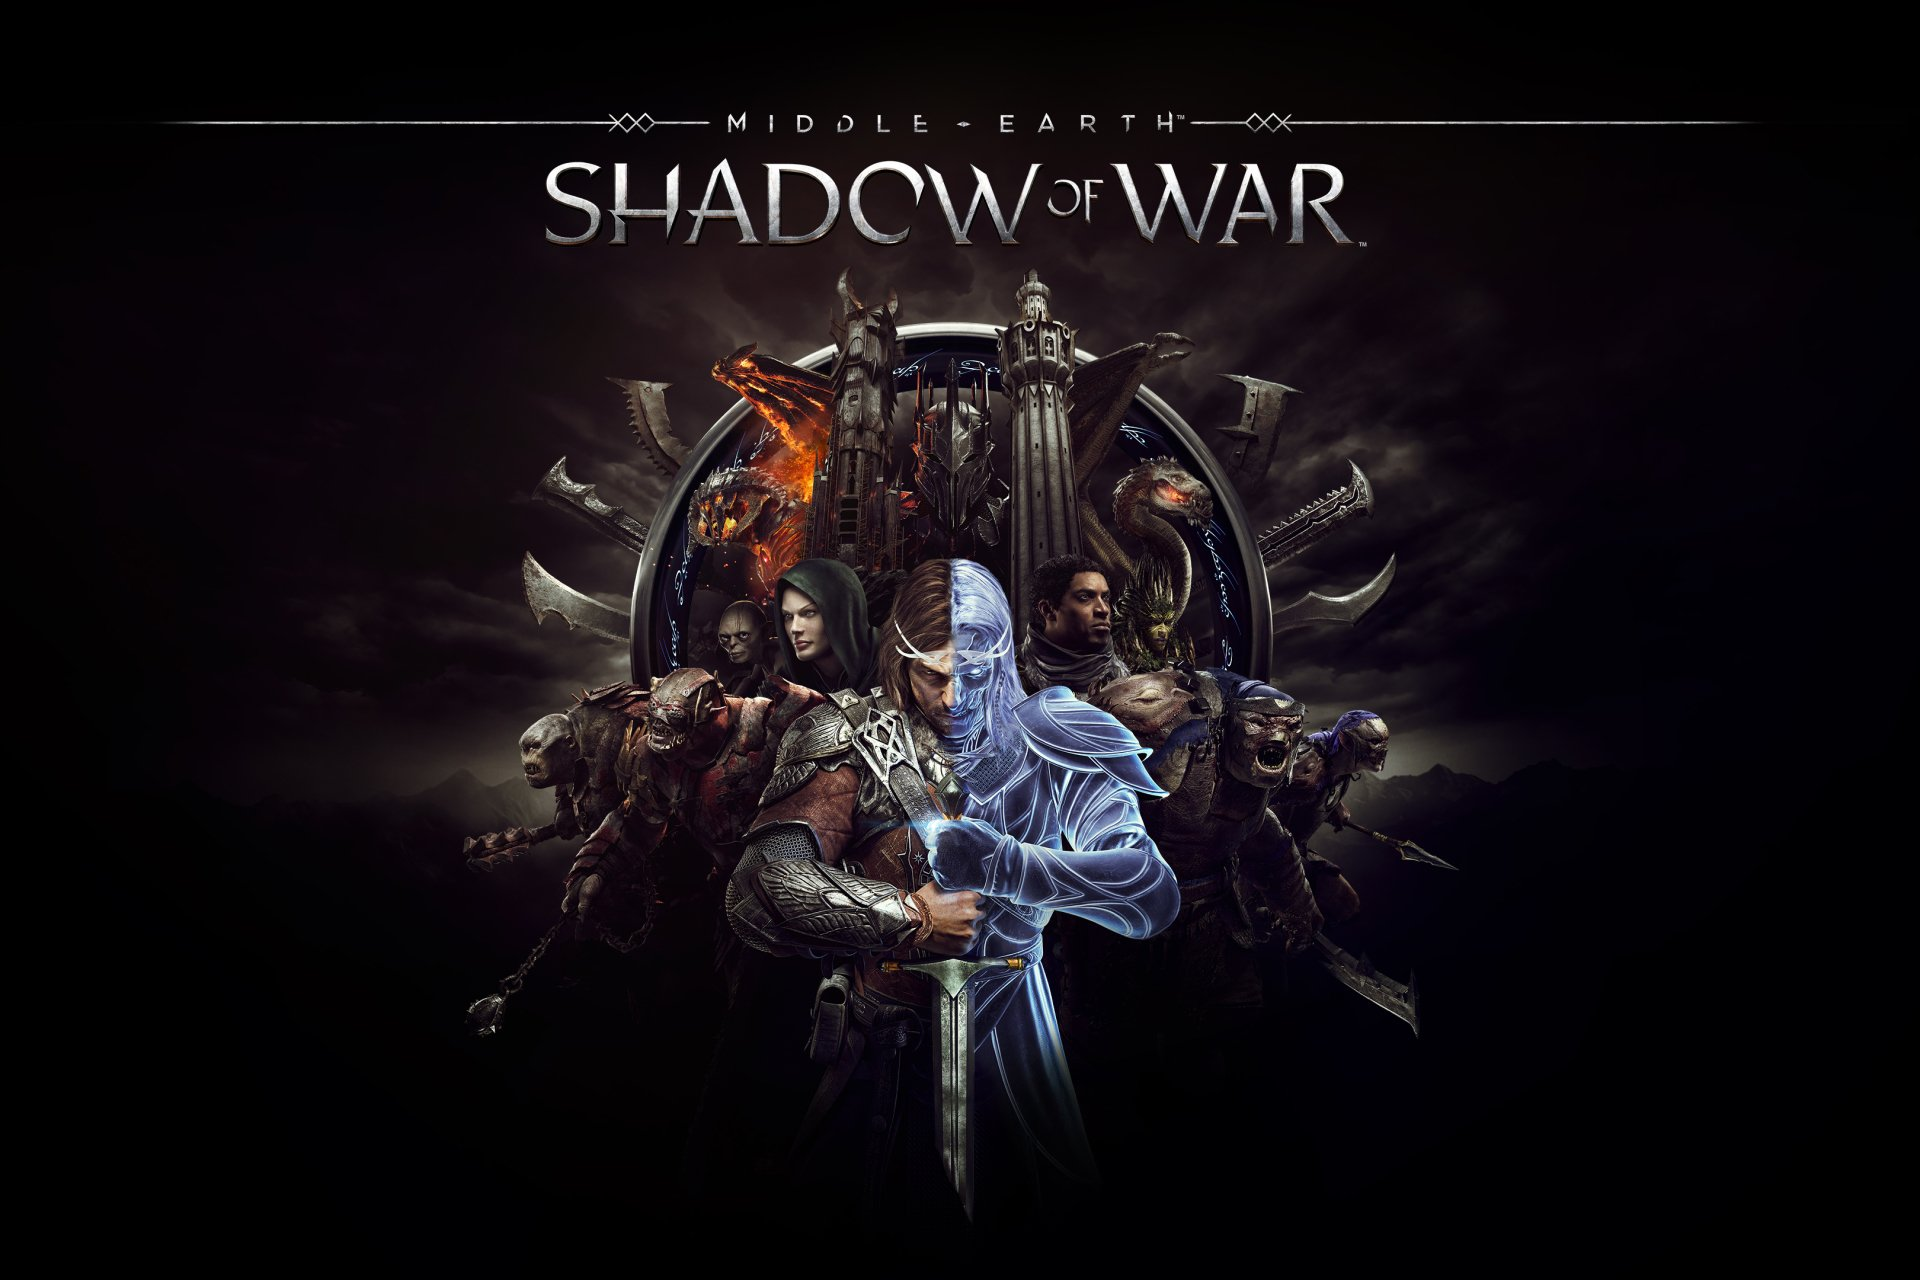 Middle-earth: Shadow of War Activation key + Crack PC Game Free Download